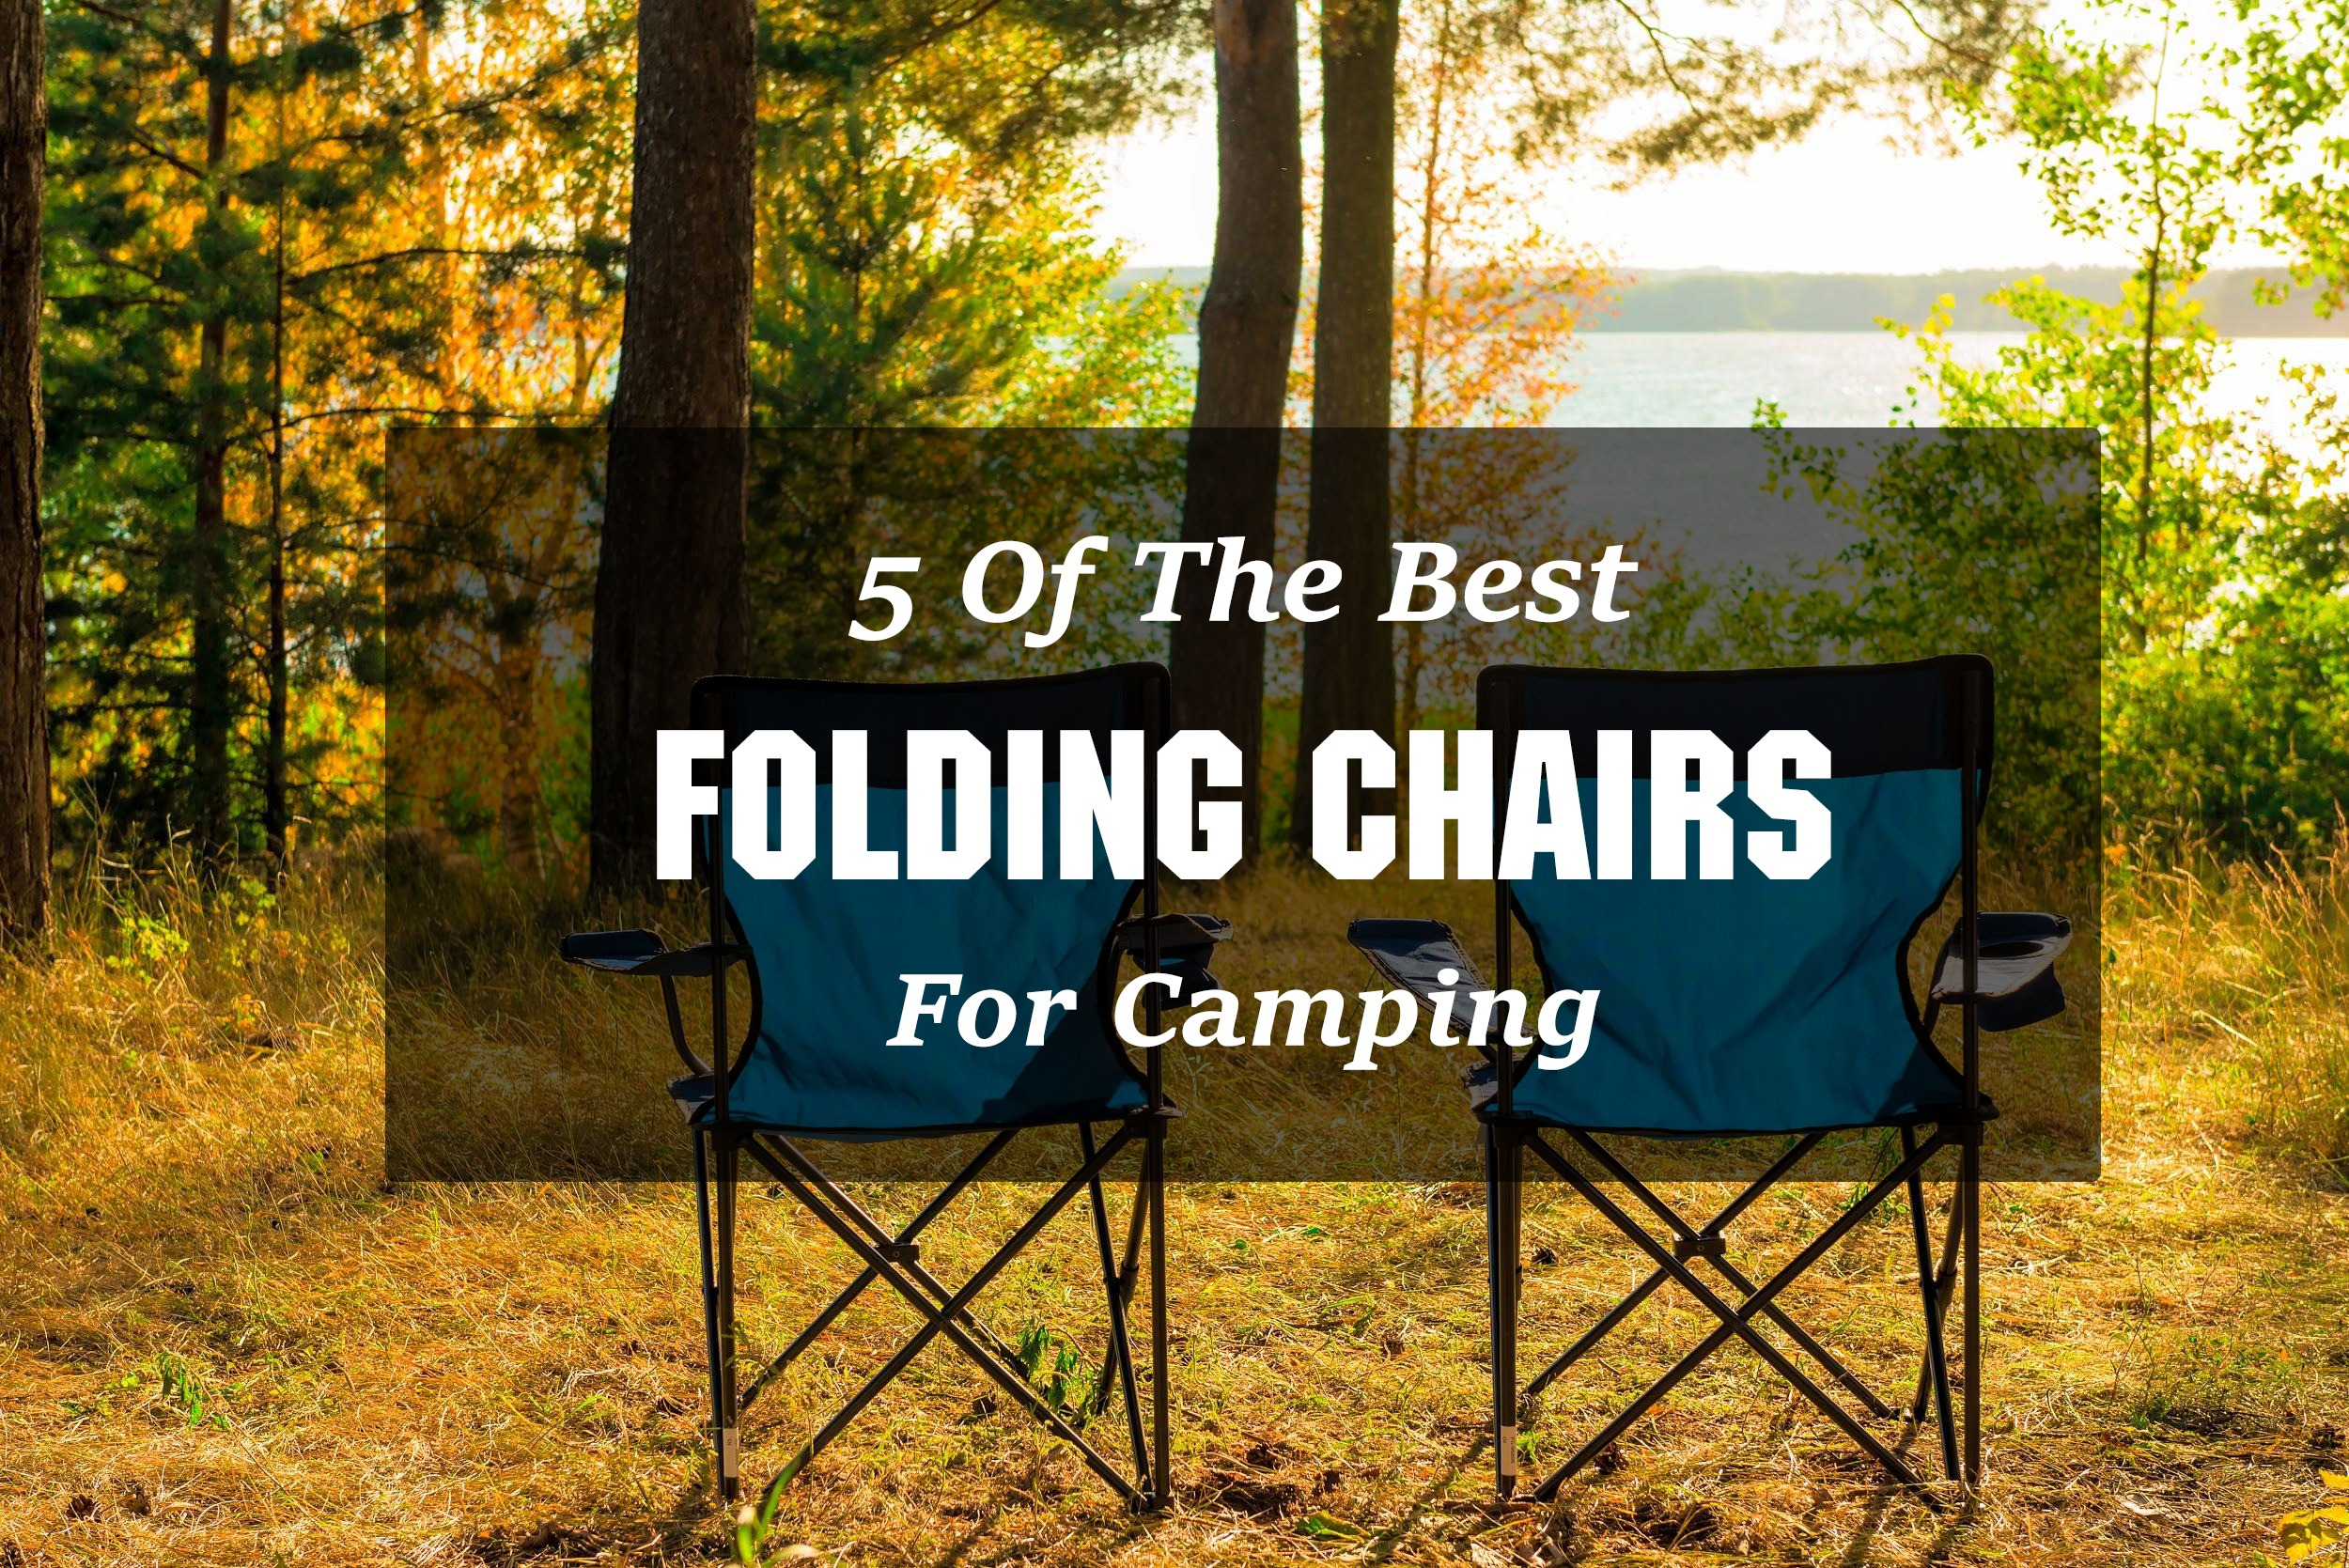 best folding chair ergonomic jumia 5 of the chairs for camping trips